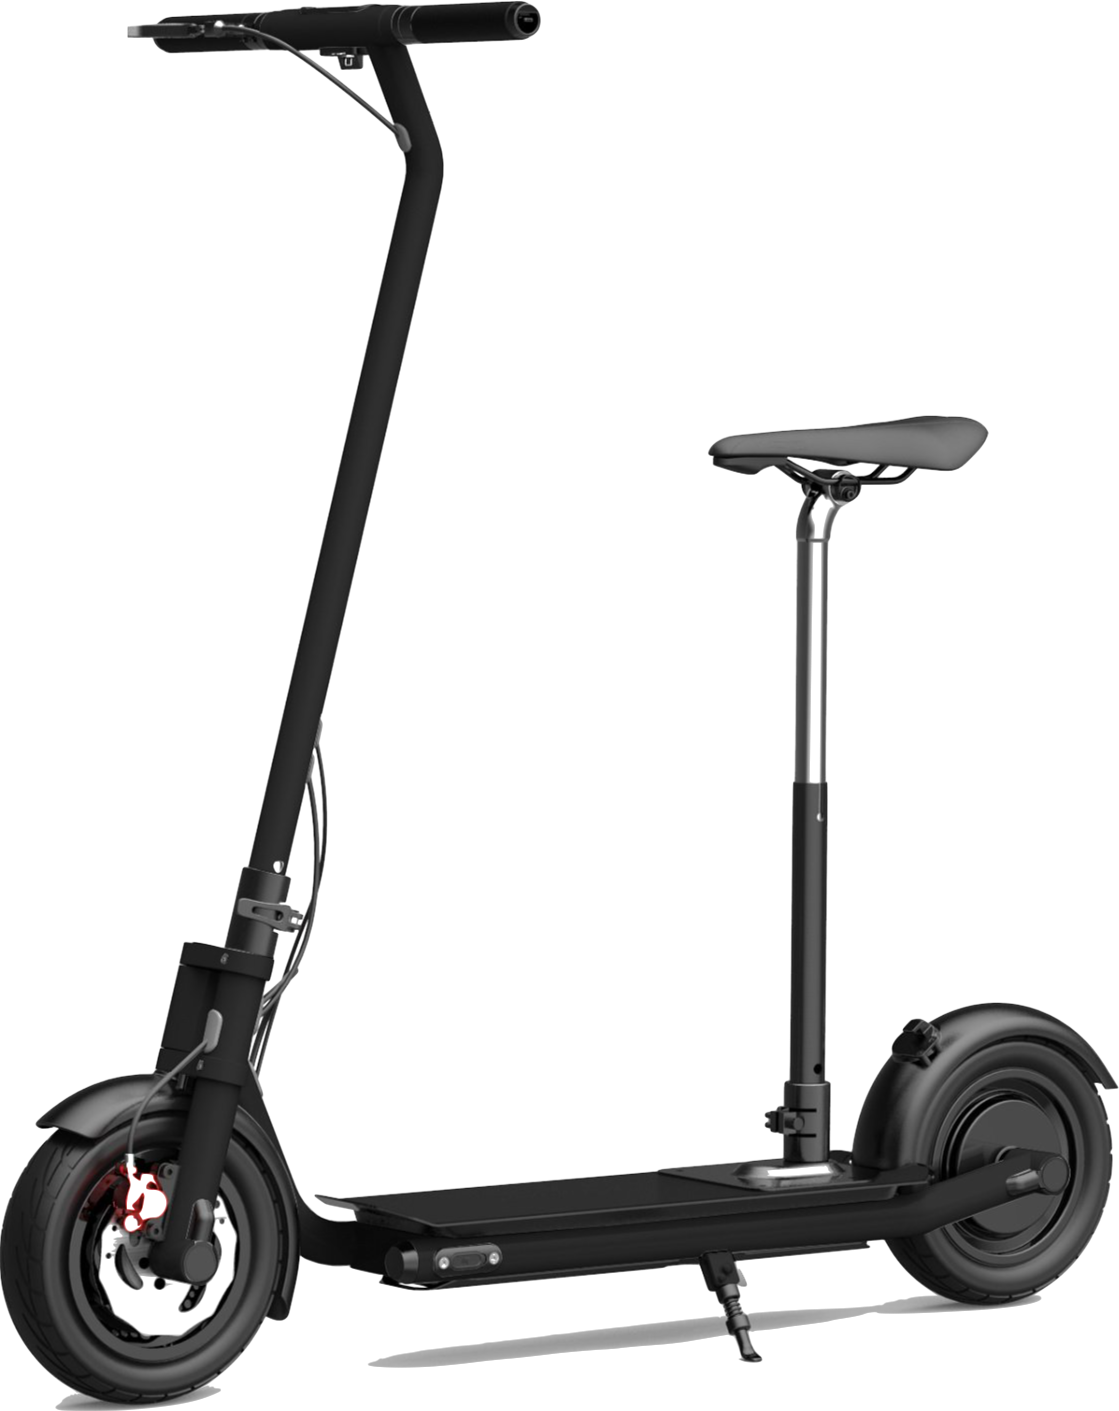 Smarthlon N7 Electric Scooter